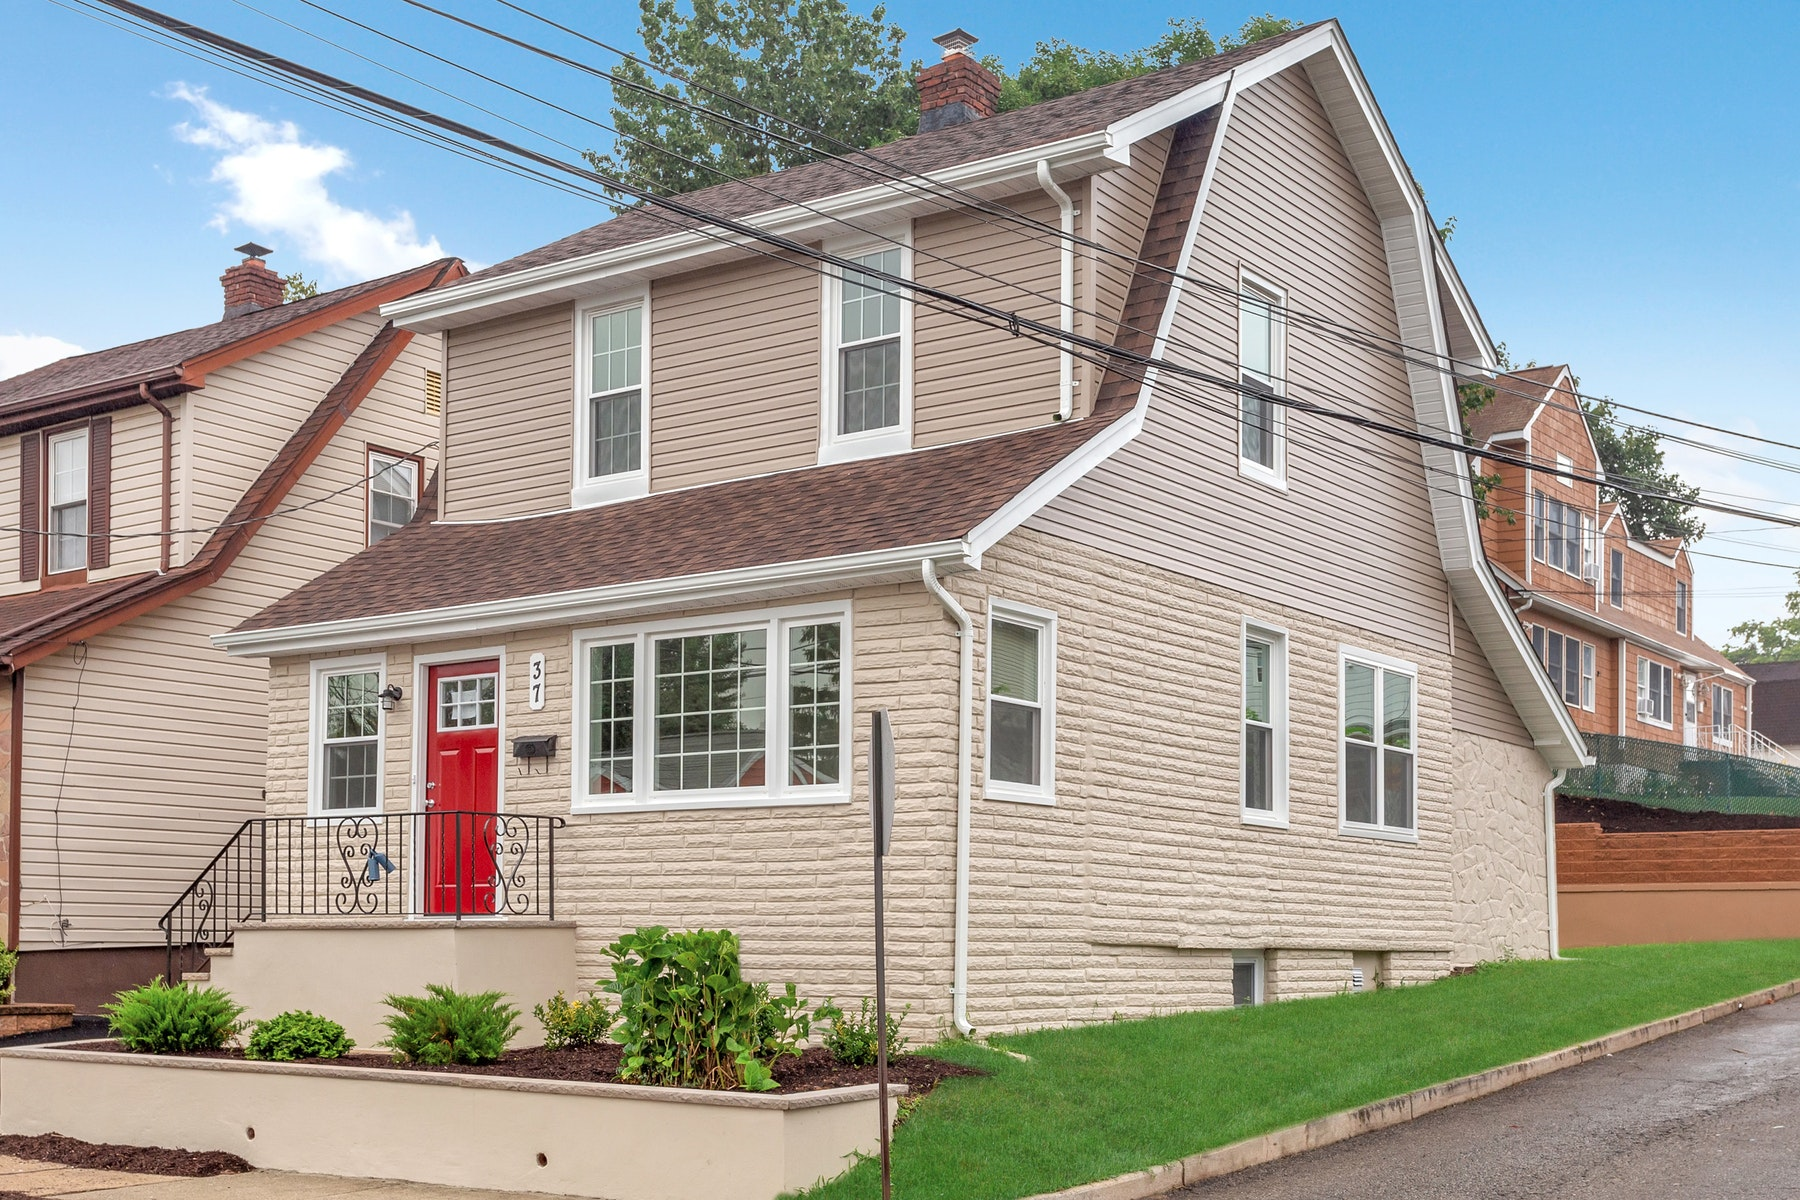 Single Family Homes for Sale at Fully Renovated and Priced To Sell 37 Gless Avenue Nutley, New Jersey 07110 United States